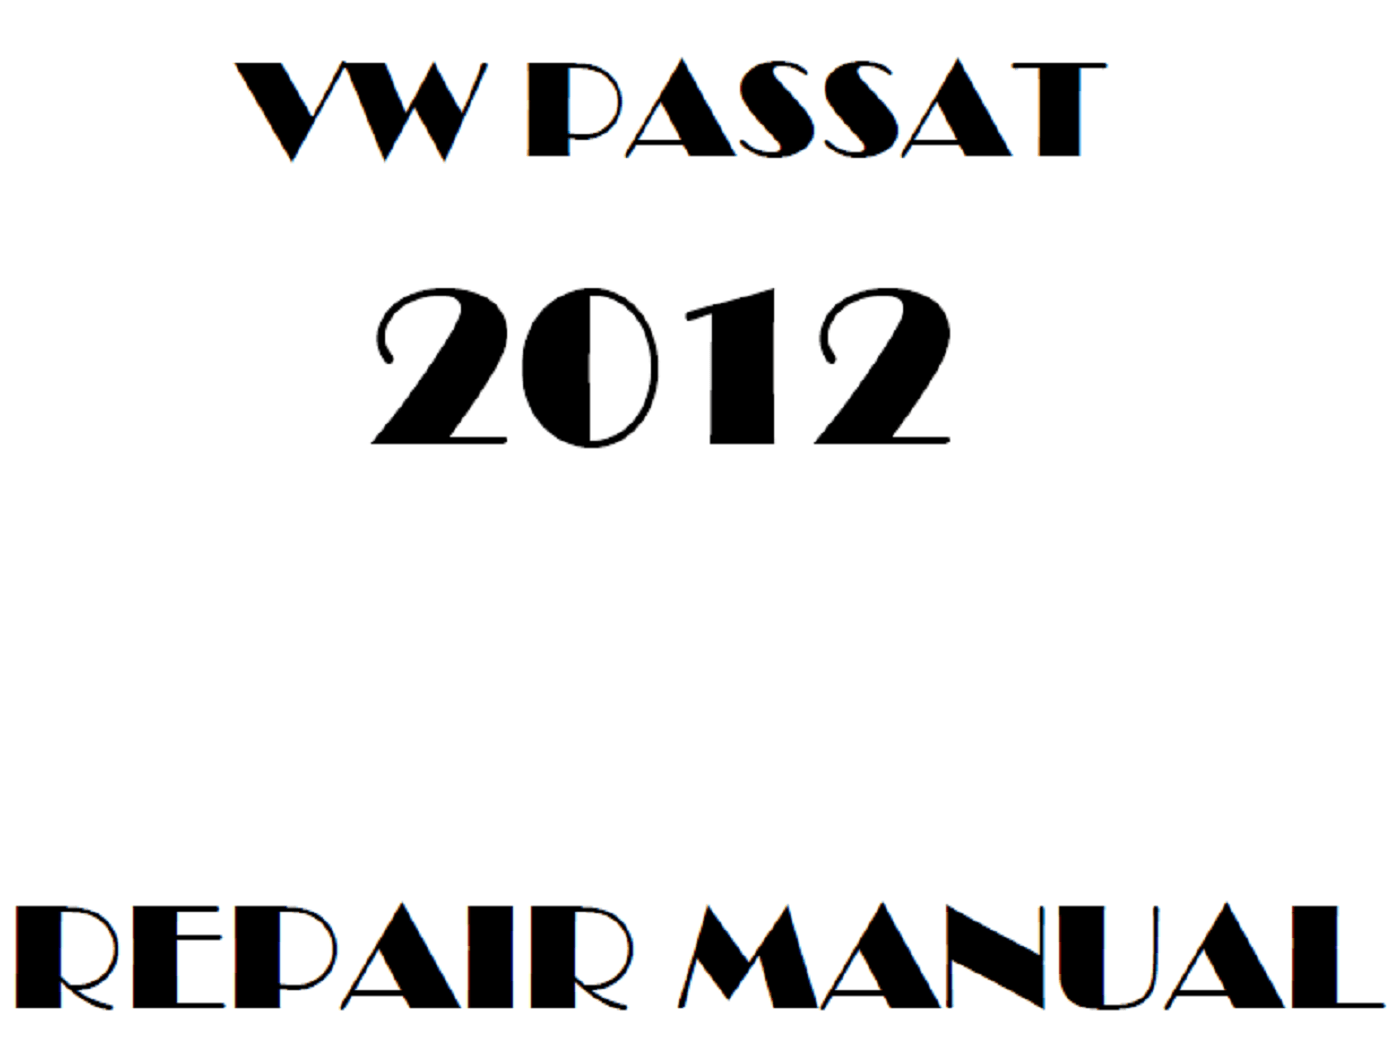 2012 Volkswagen Passat repair manual